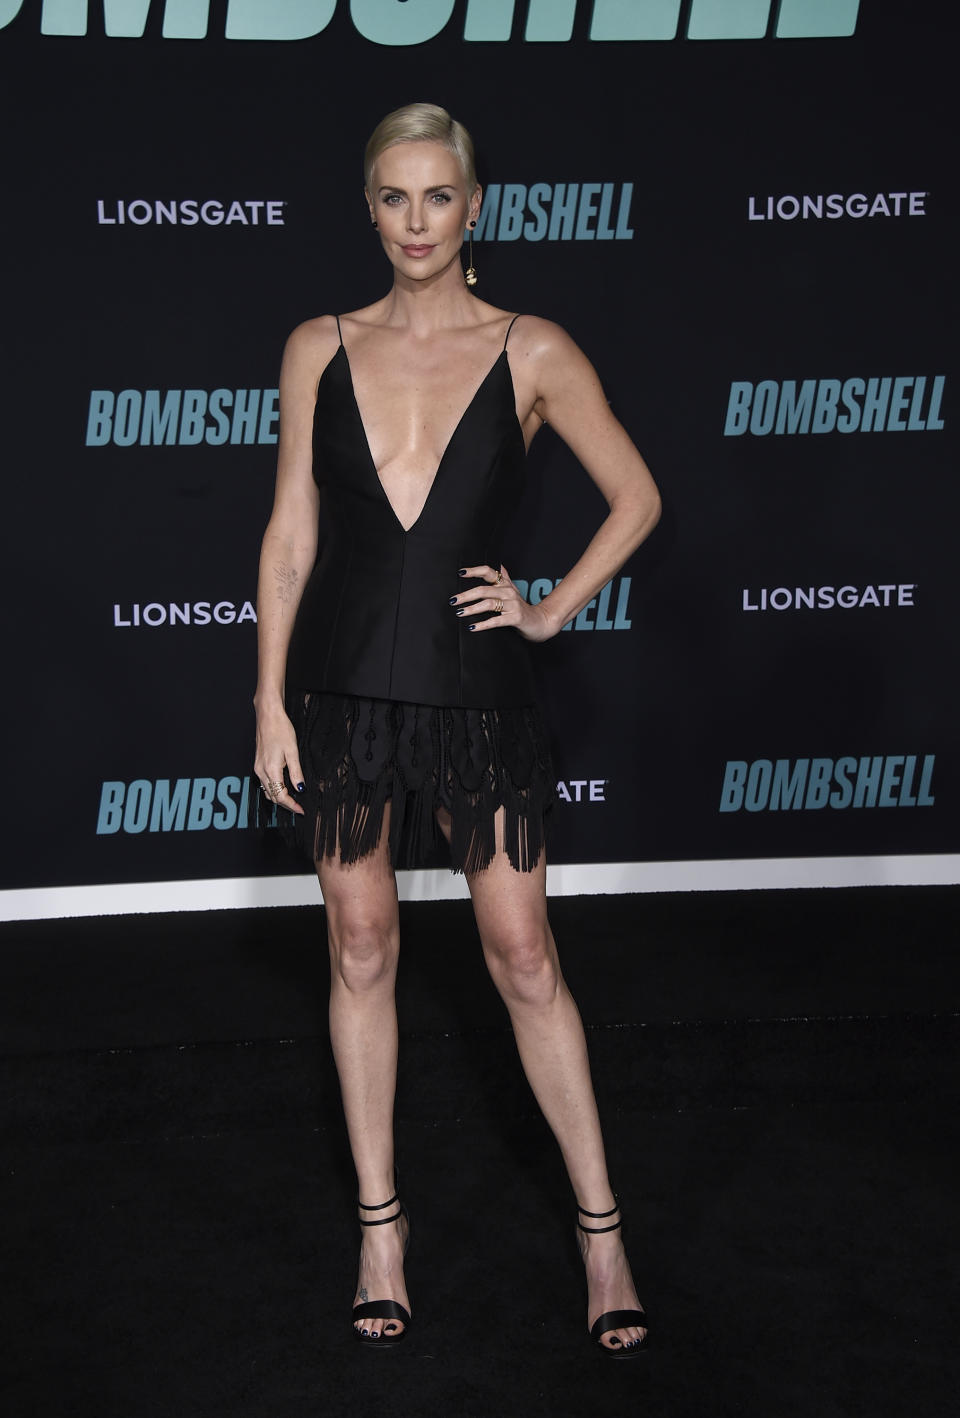 """Charlize Theron attends the premiere of """"Bombshell"""" at Regency Village Theatre on Tuesday, Dec. 10, 2019, in Los Angeles. (Photo by Jordan Strauss/Invision/AP)"""